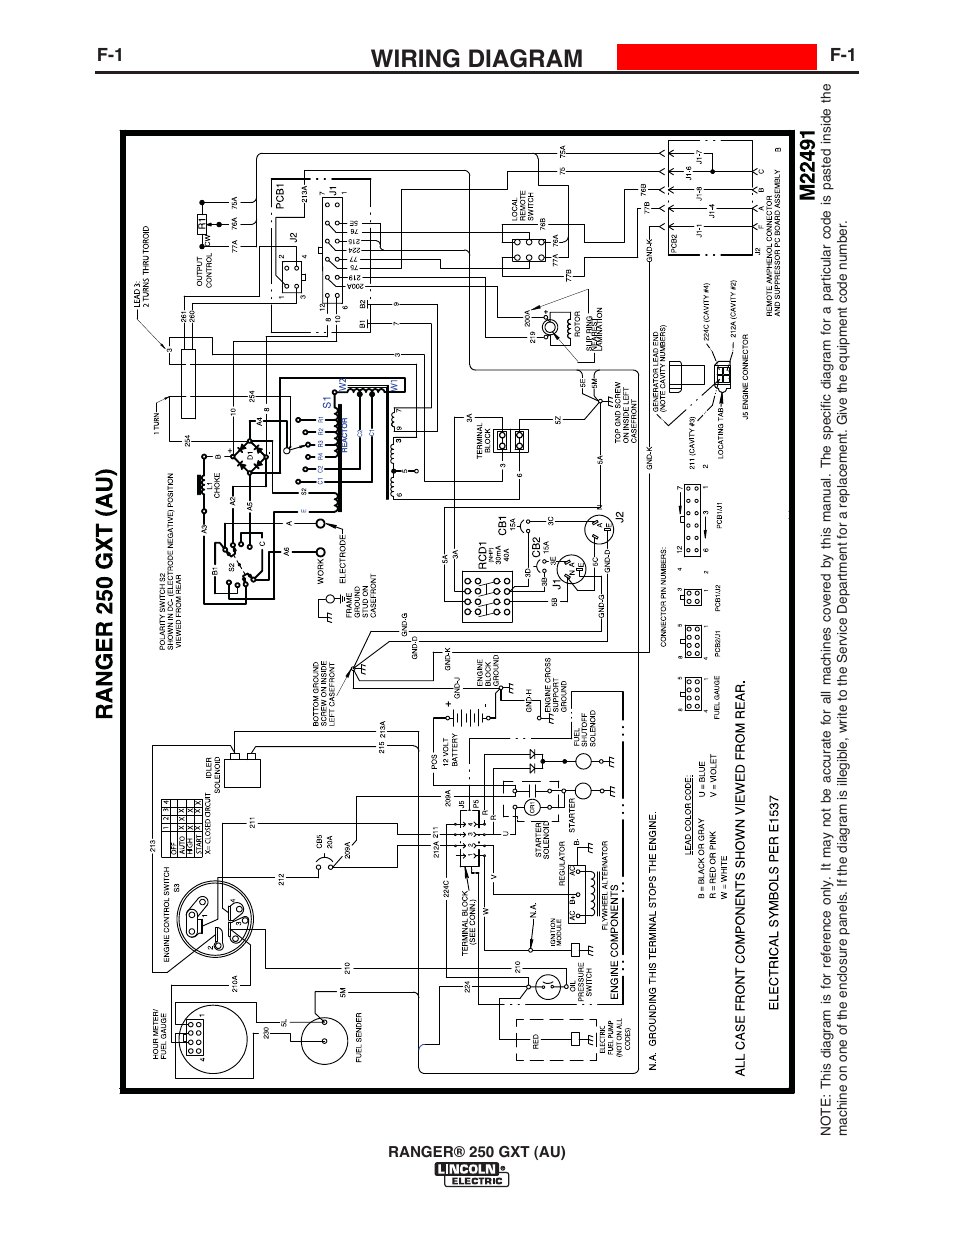 lincoln ranger 250 gxt wiring diagram